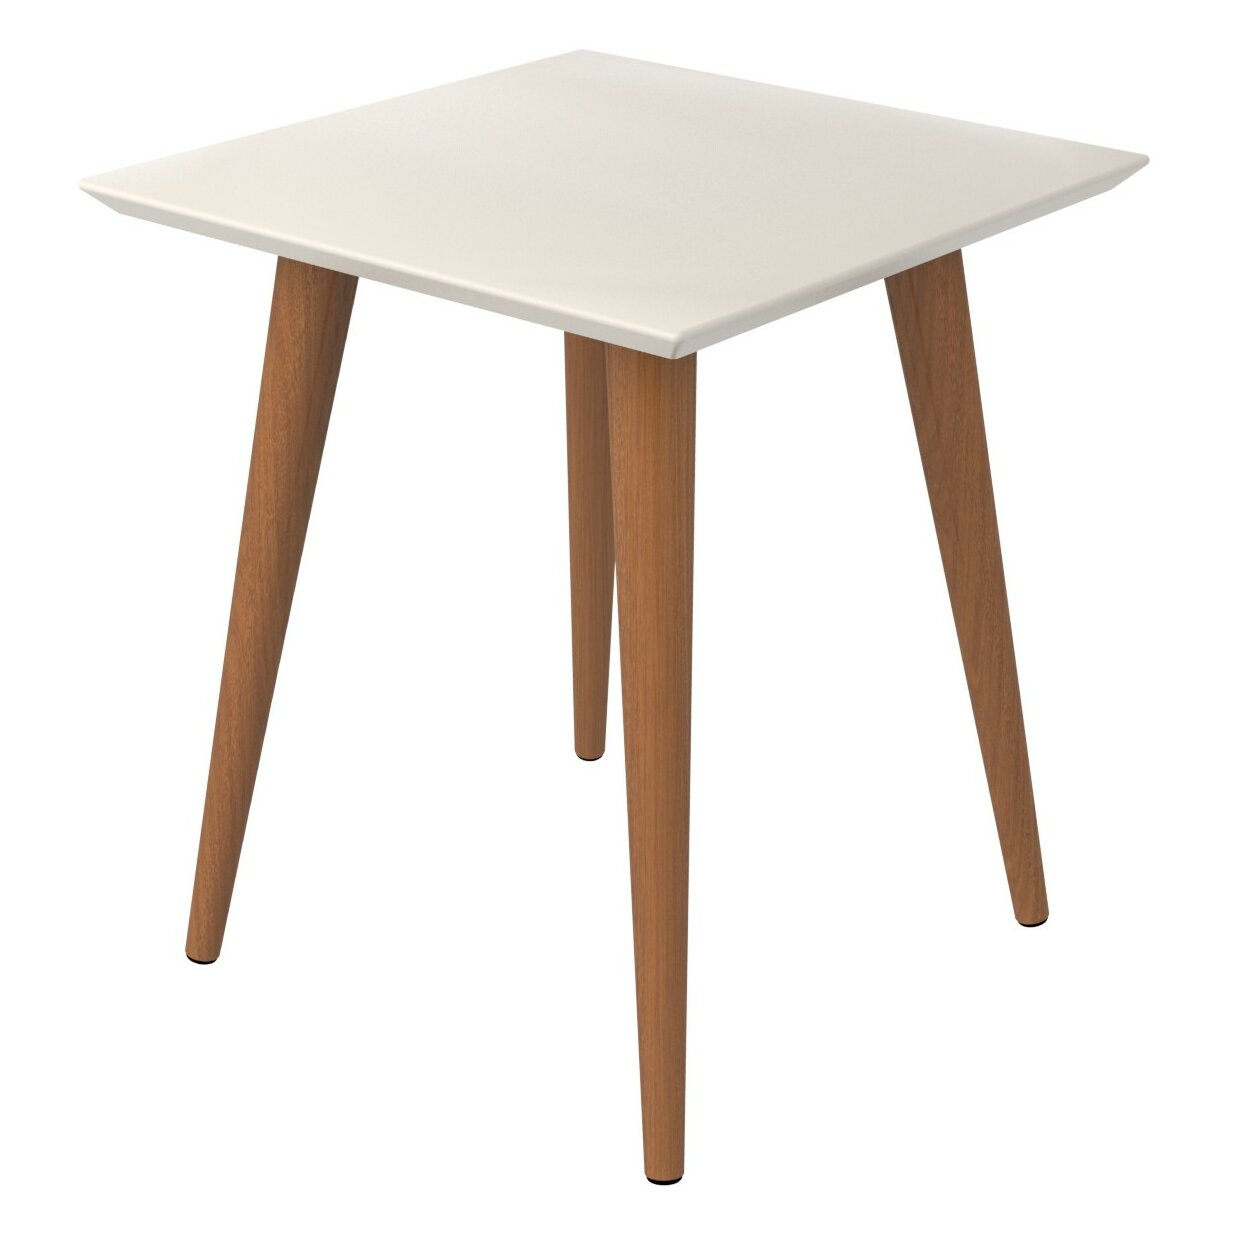 George Oliver Lemington End Table With Splayed Wooden Legs Reviews Wayfair